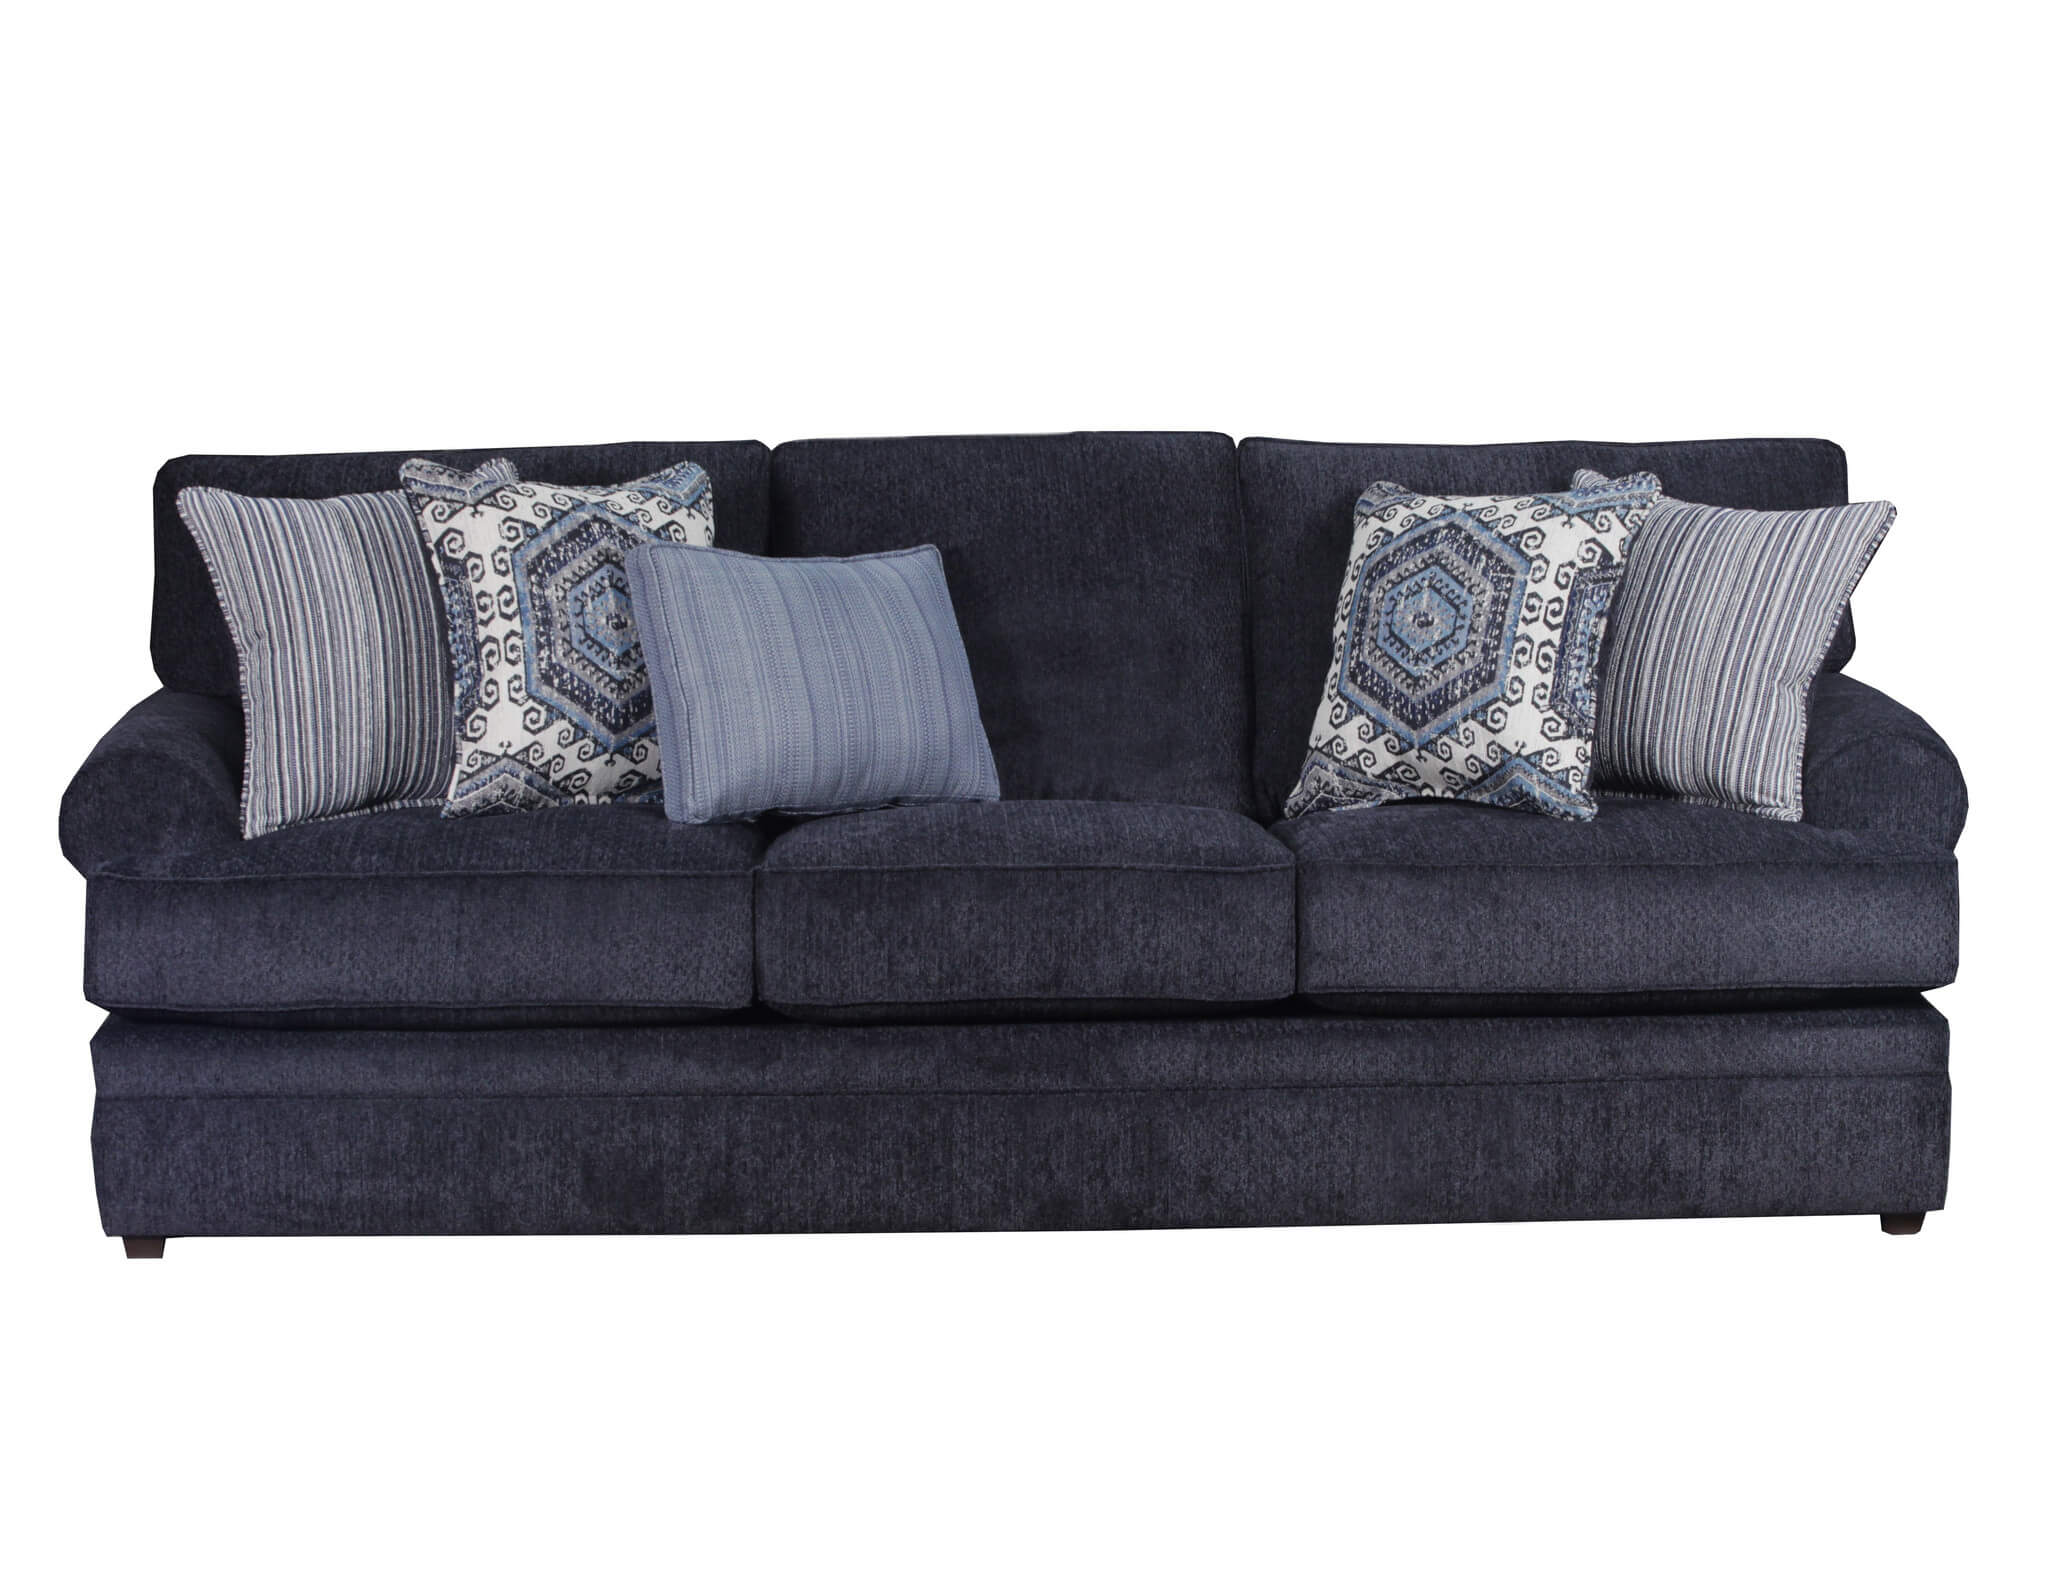 Cool 8530 Bellamy Slate Sofa And Loveseat By Simmons Pdpeps Interior Chair Design Pdpepsorg